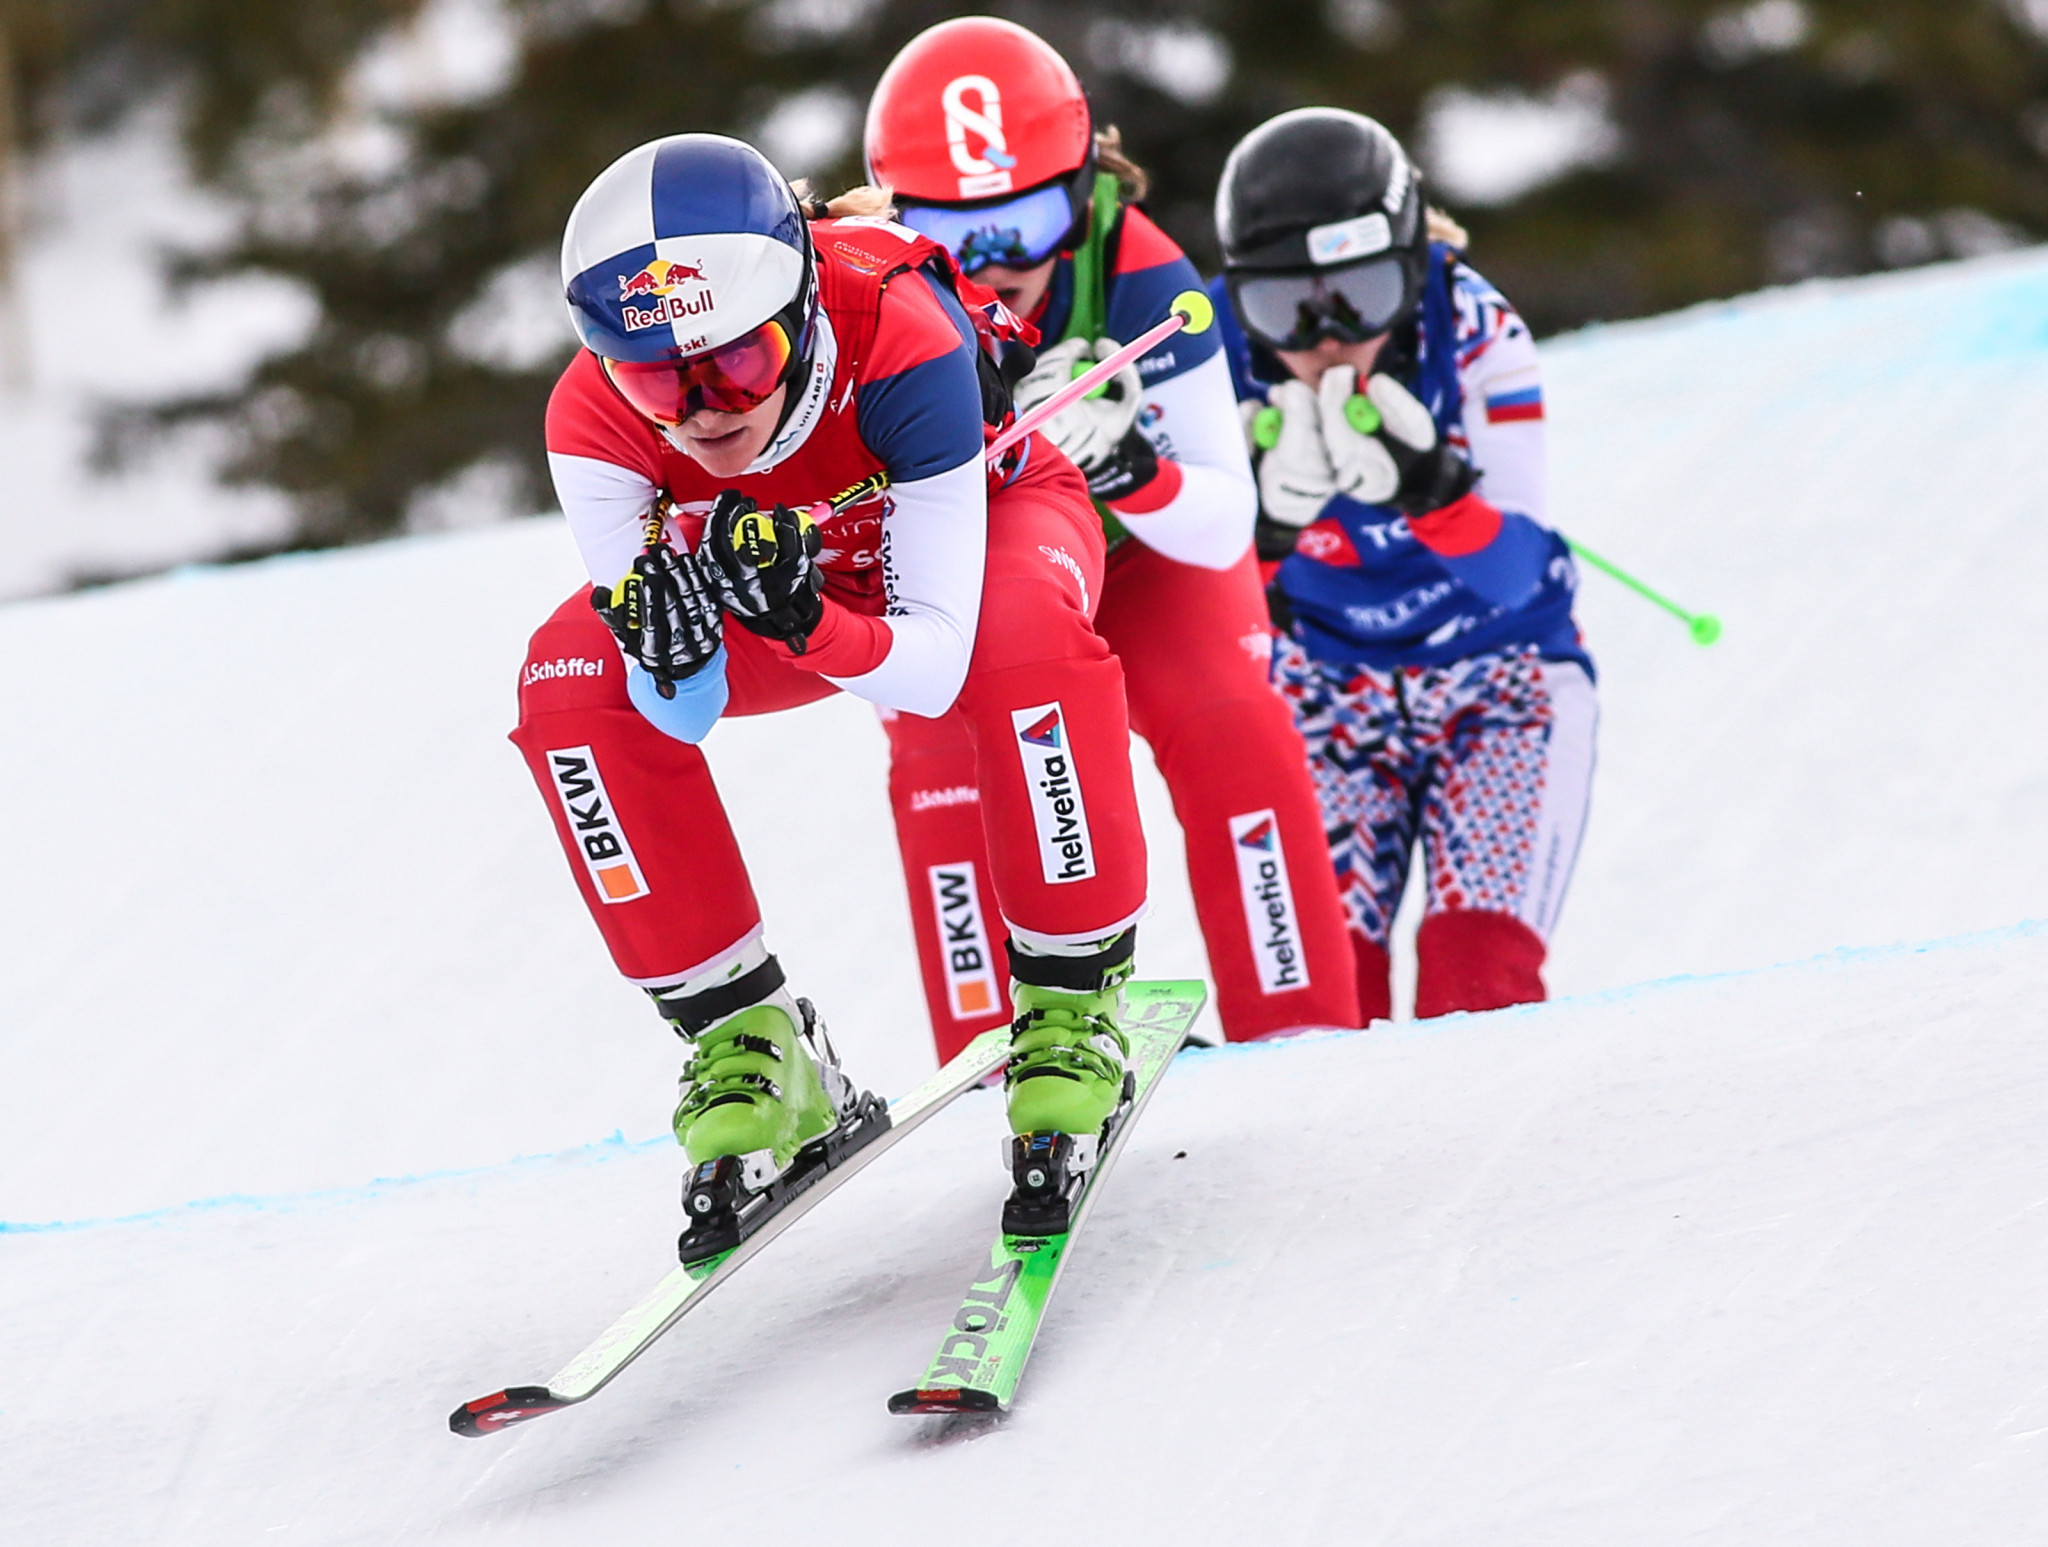 Smith wraps up FIS Ski Cross World Cup title on home snow in Veysonnaz